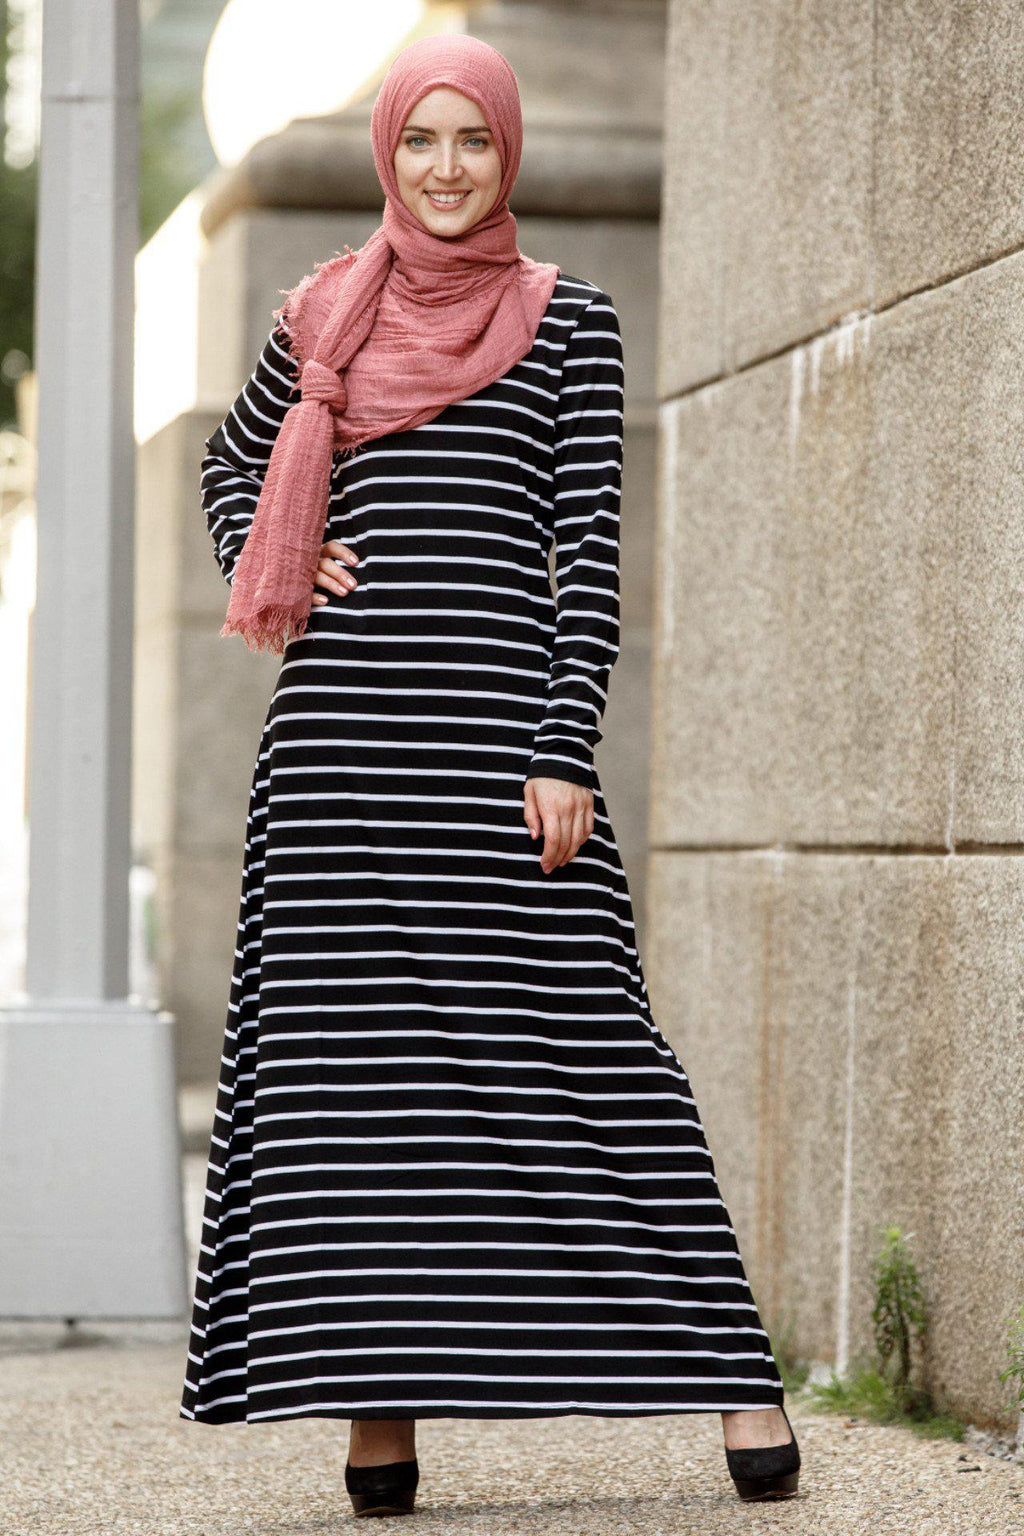 Striped Long Sleeve Maxi Dress - Abaya, Hijabs, Jilbabs, on sale now at UrbanModesty.com